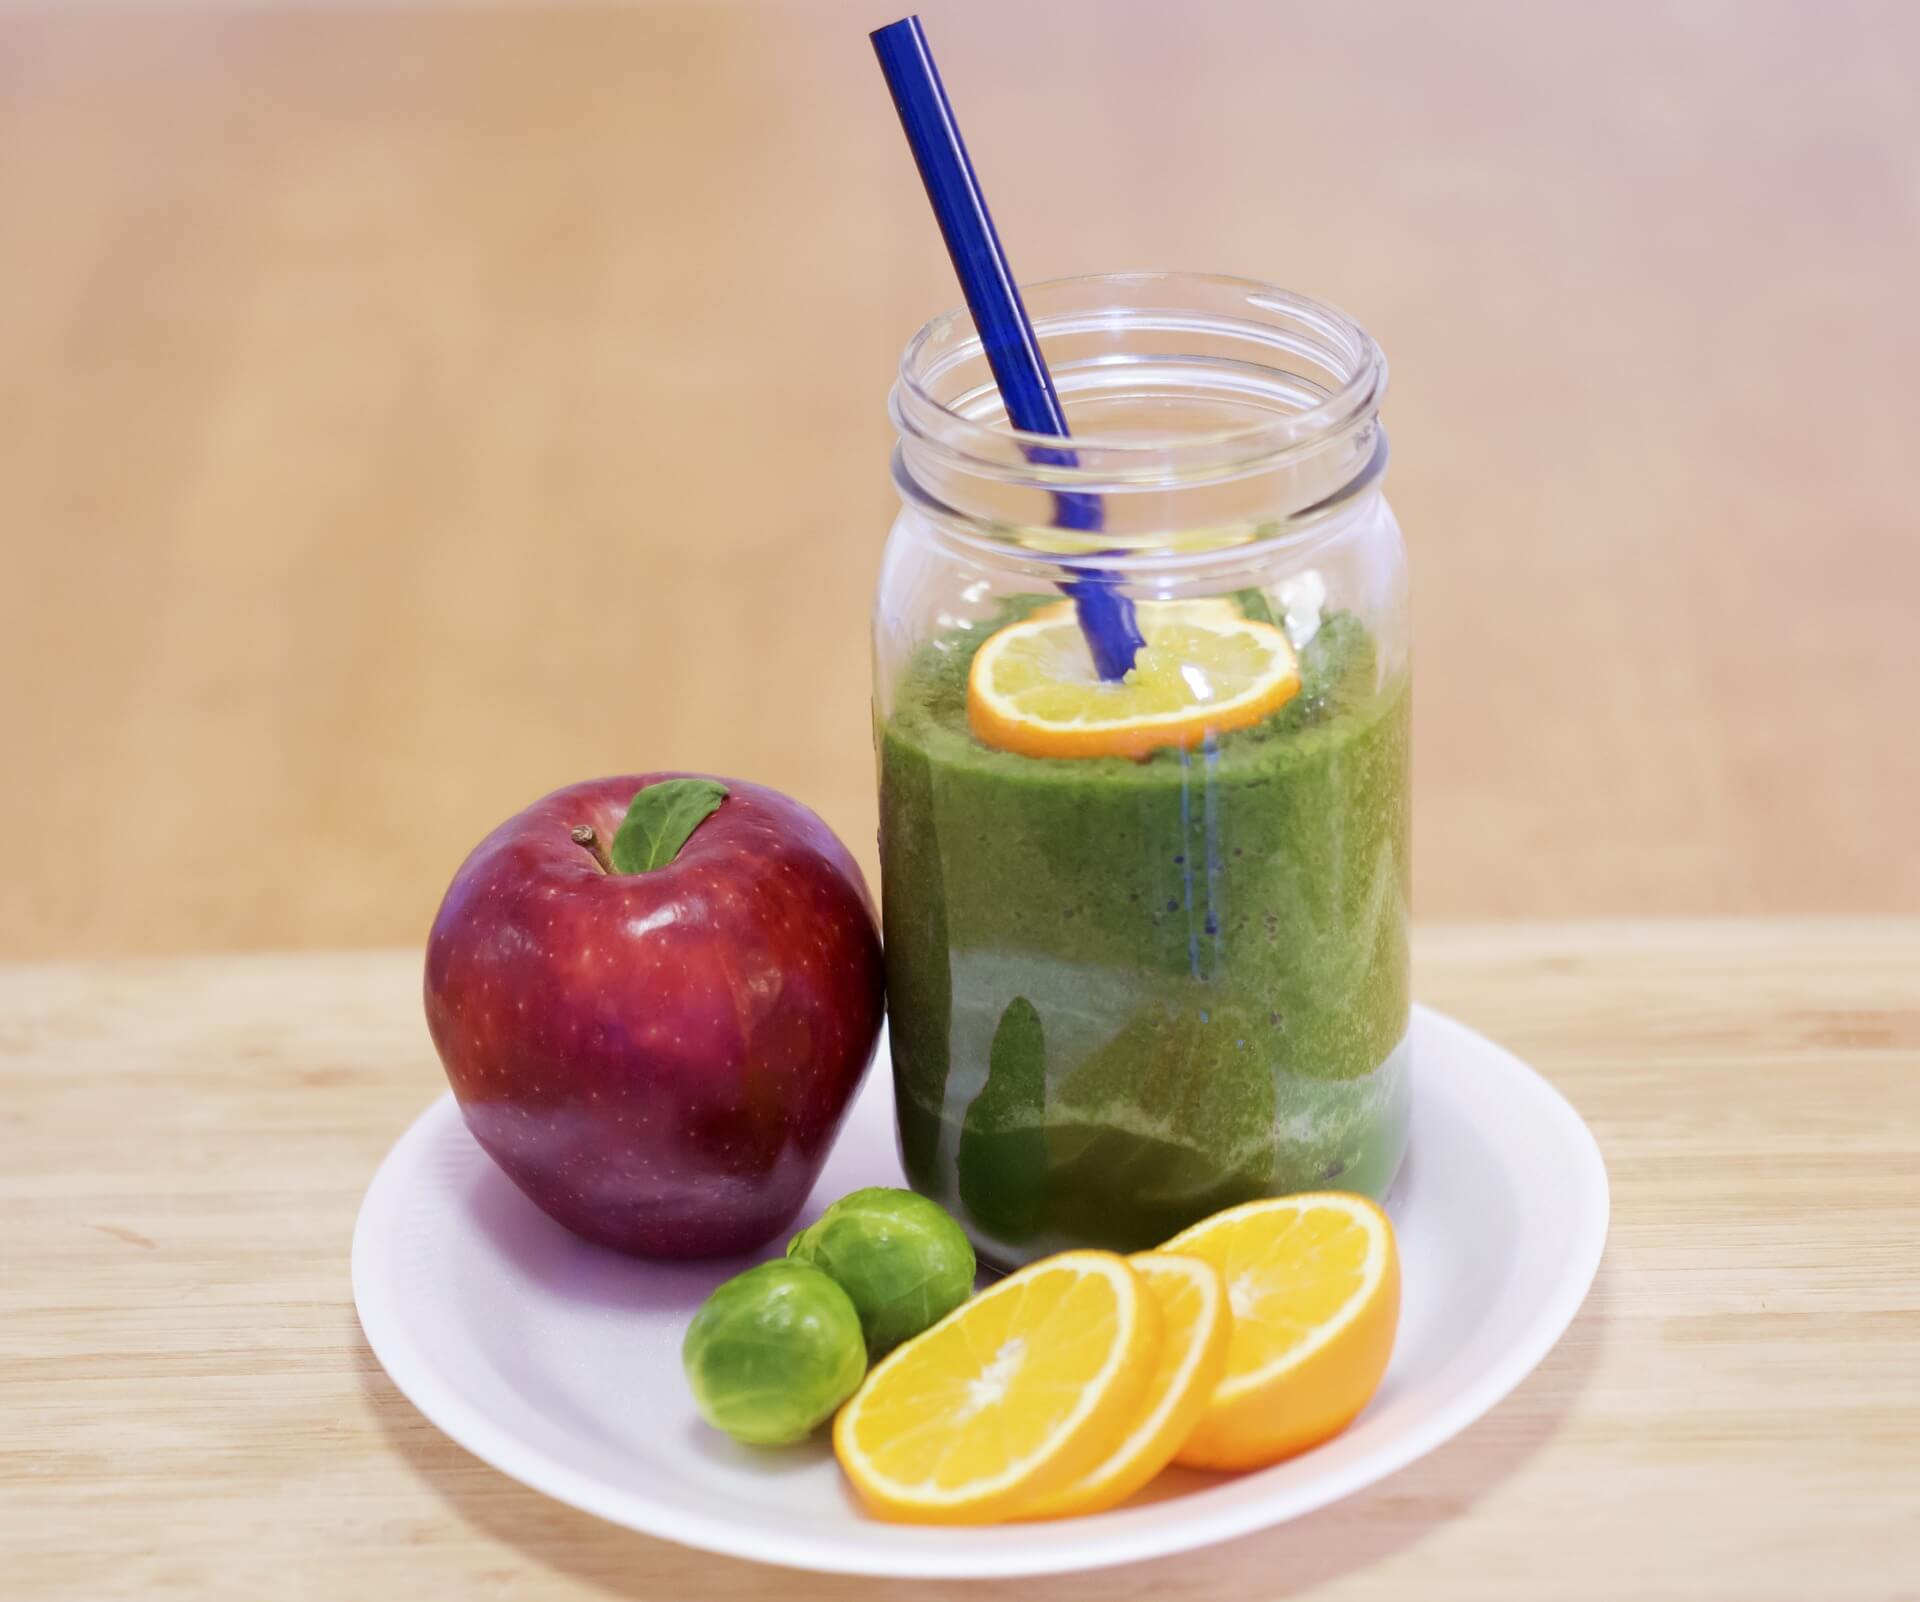 Detox with a green smoothie for breakfast